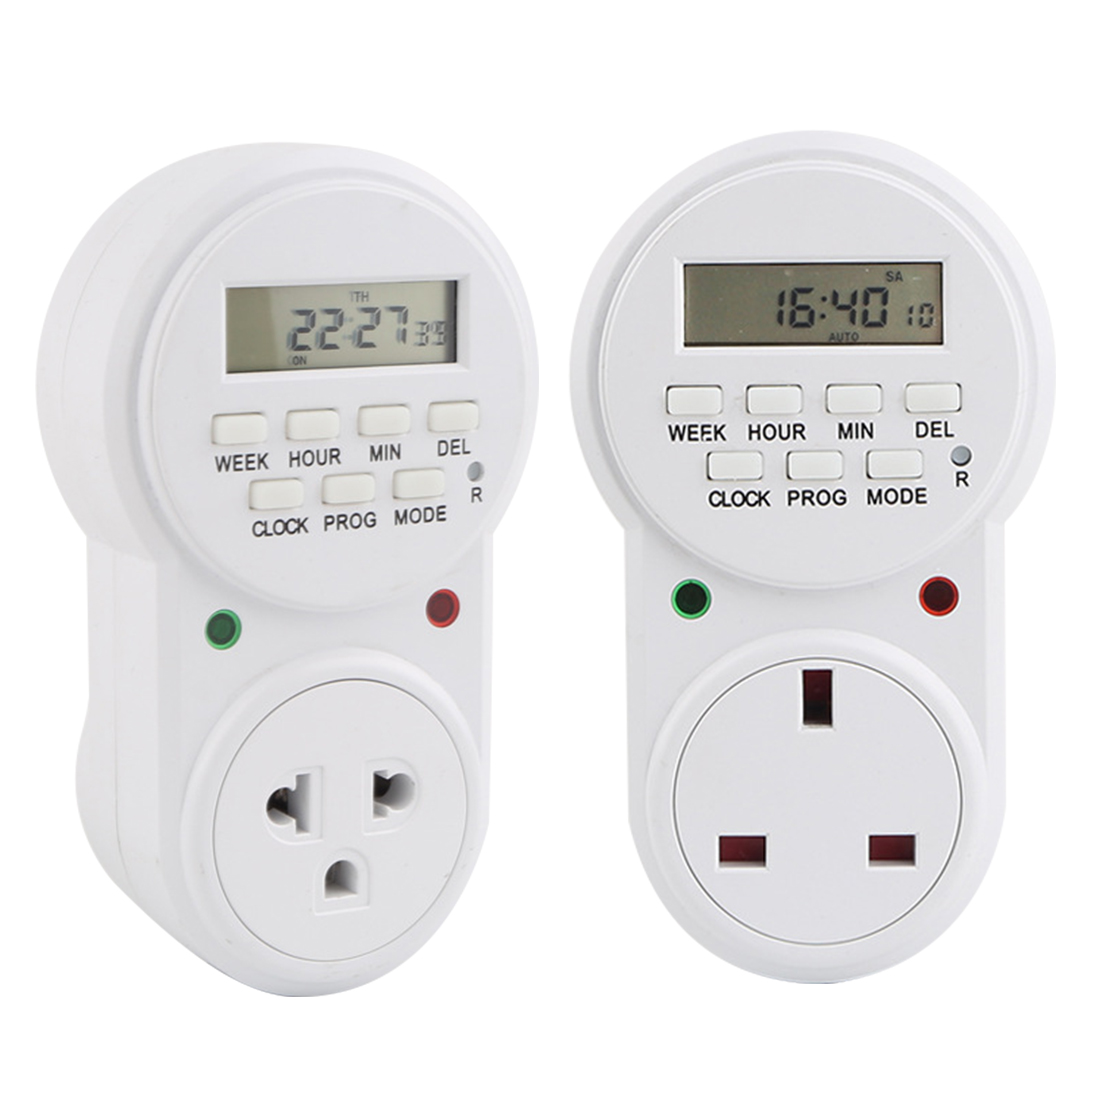 How To Save Electrical Energy Using energy-efficient timers